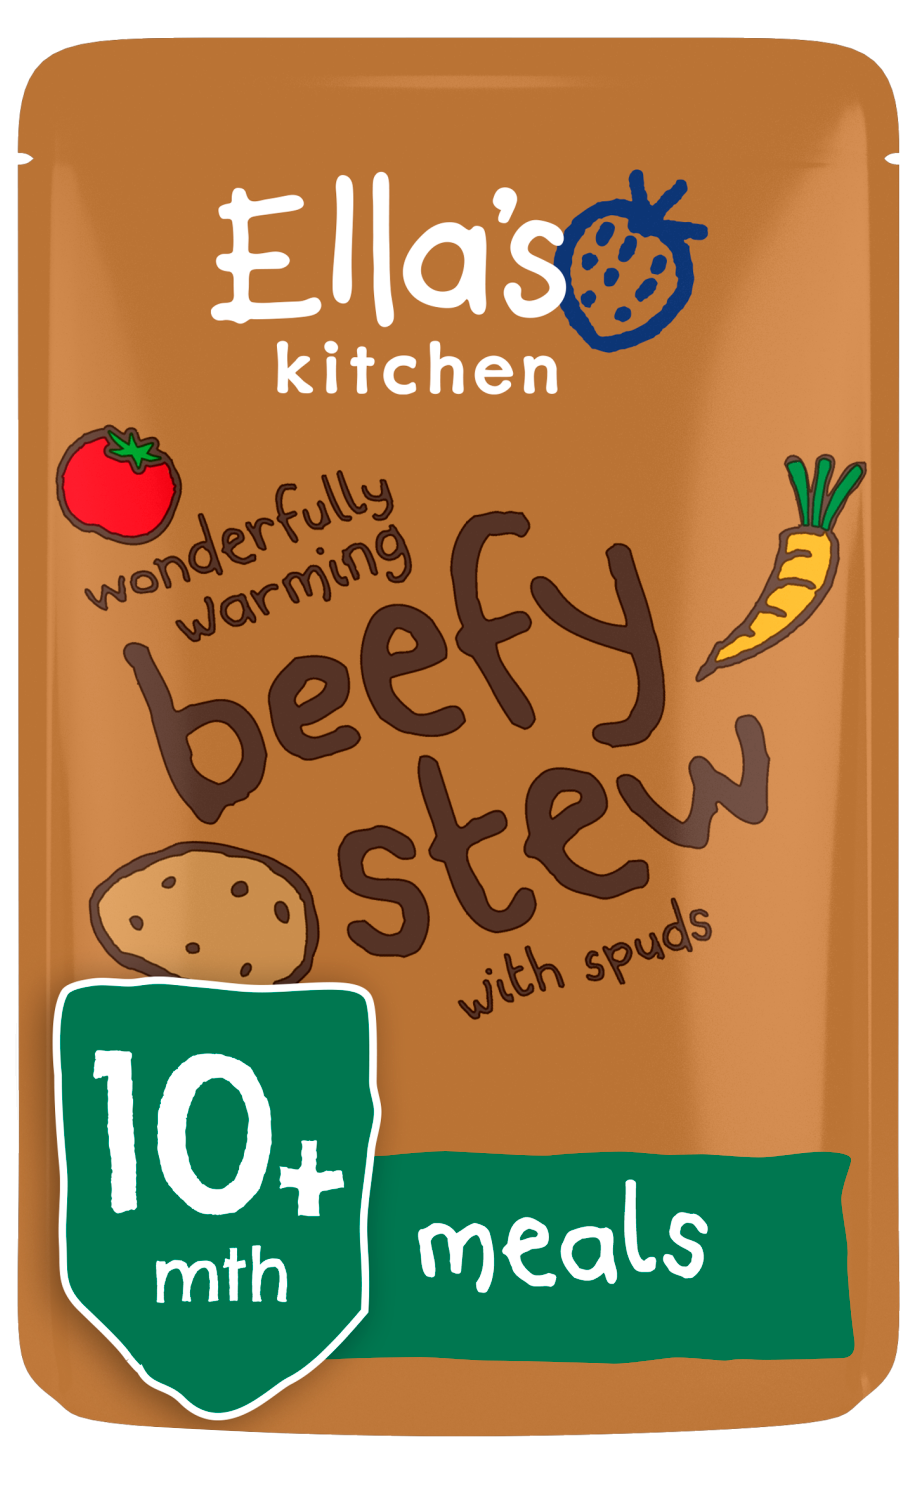 Ellas kitchen beefy stew spuds pouch 10 months front of pack O